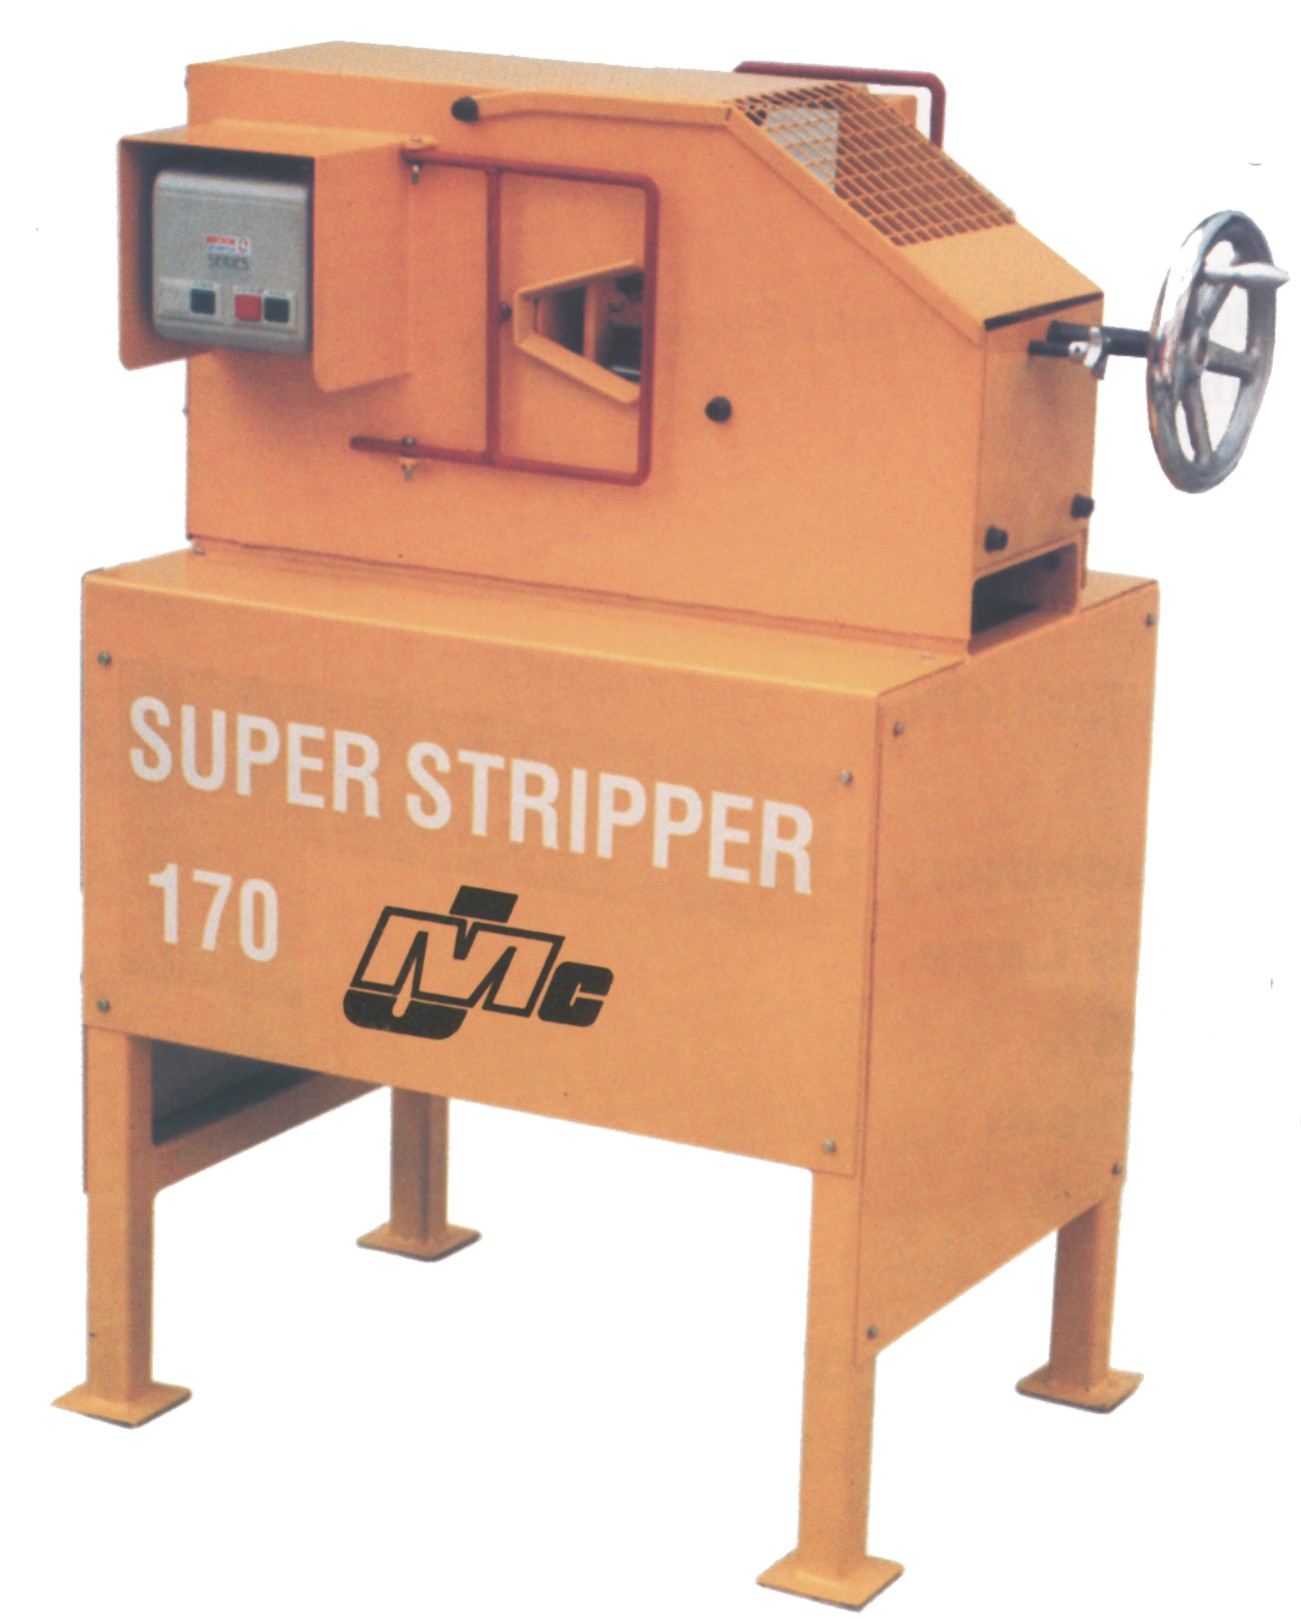 Used cable stripper